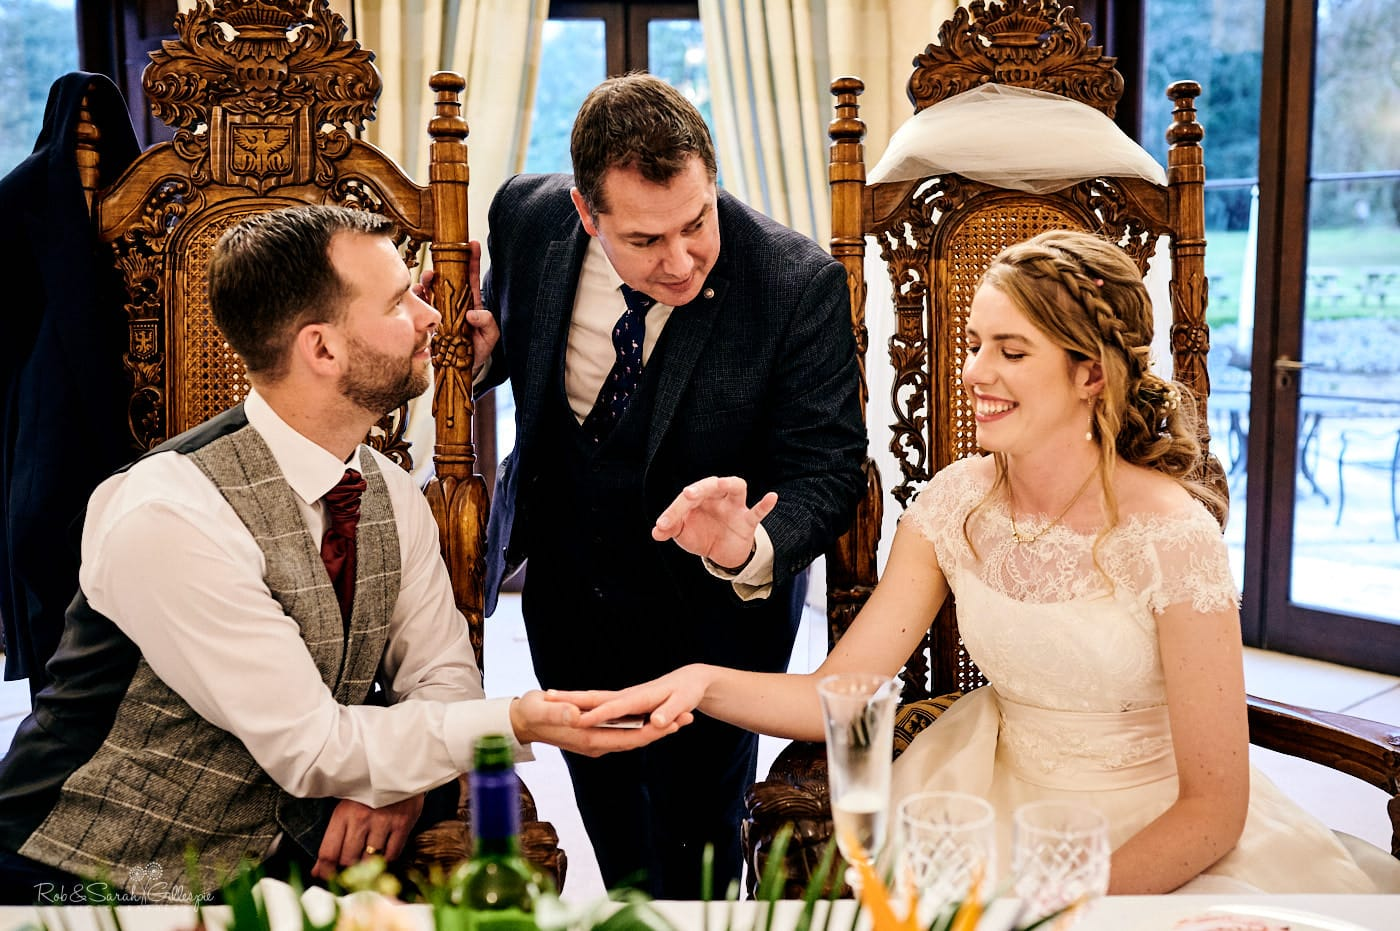 Magician performs card trick for bride and groom